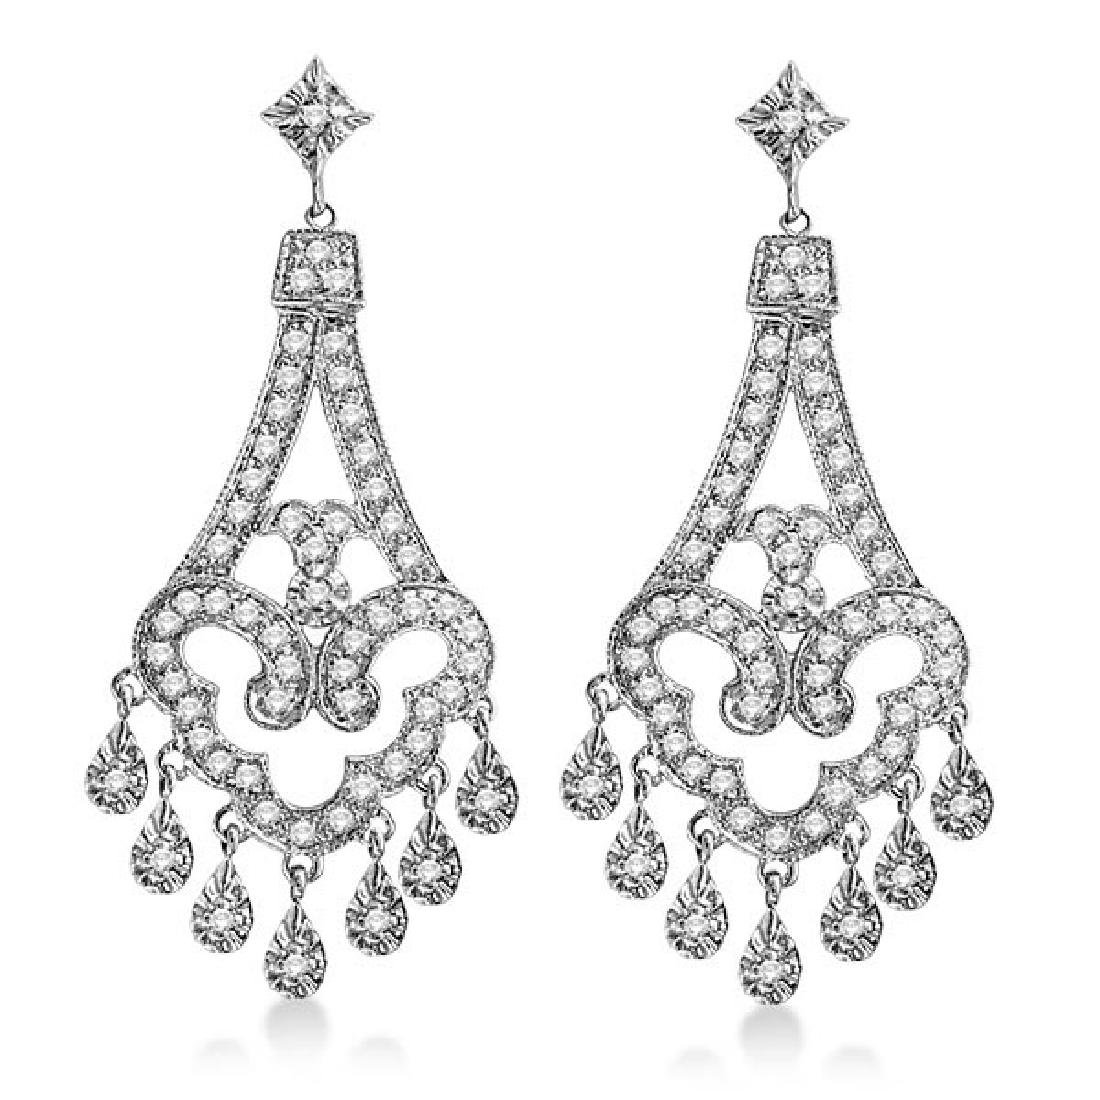 Dangling Chandelier Diamond Earrings 14K White Gold (1.